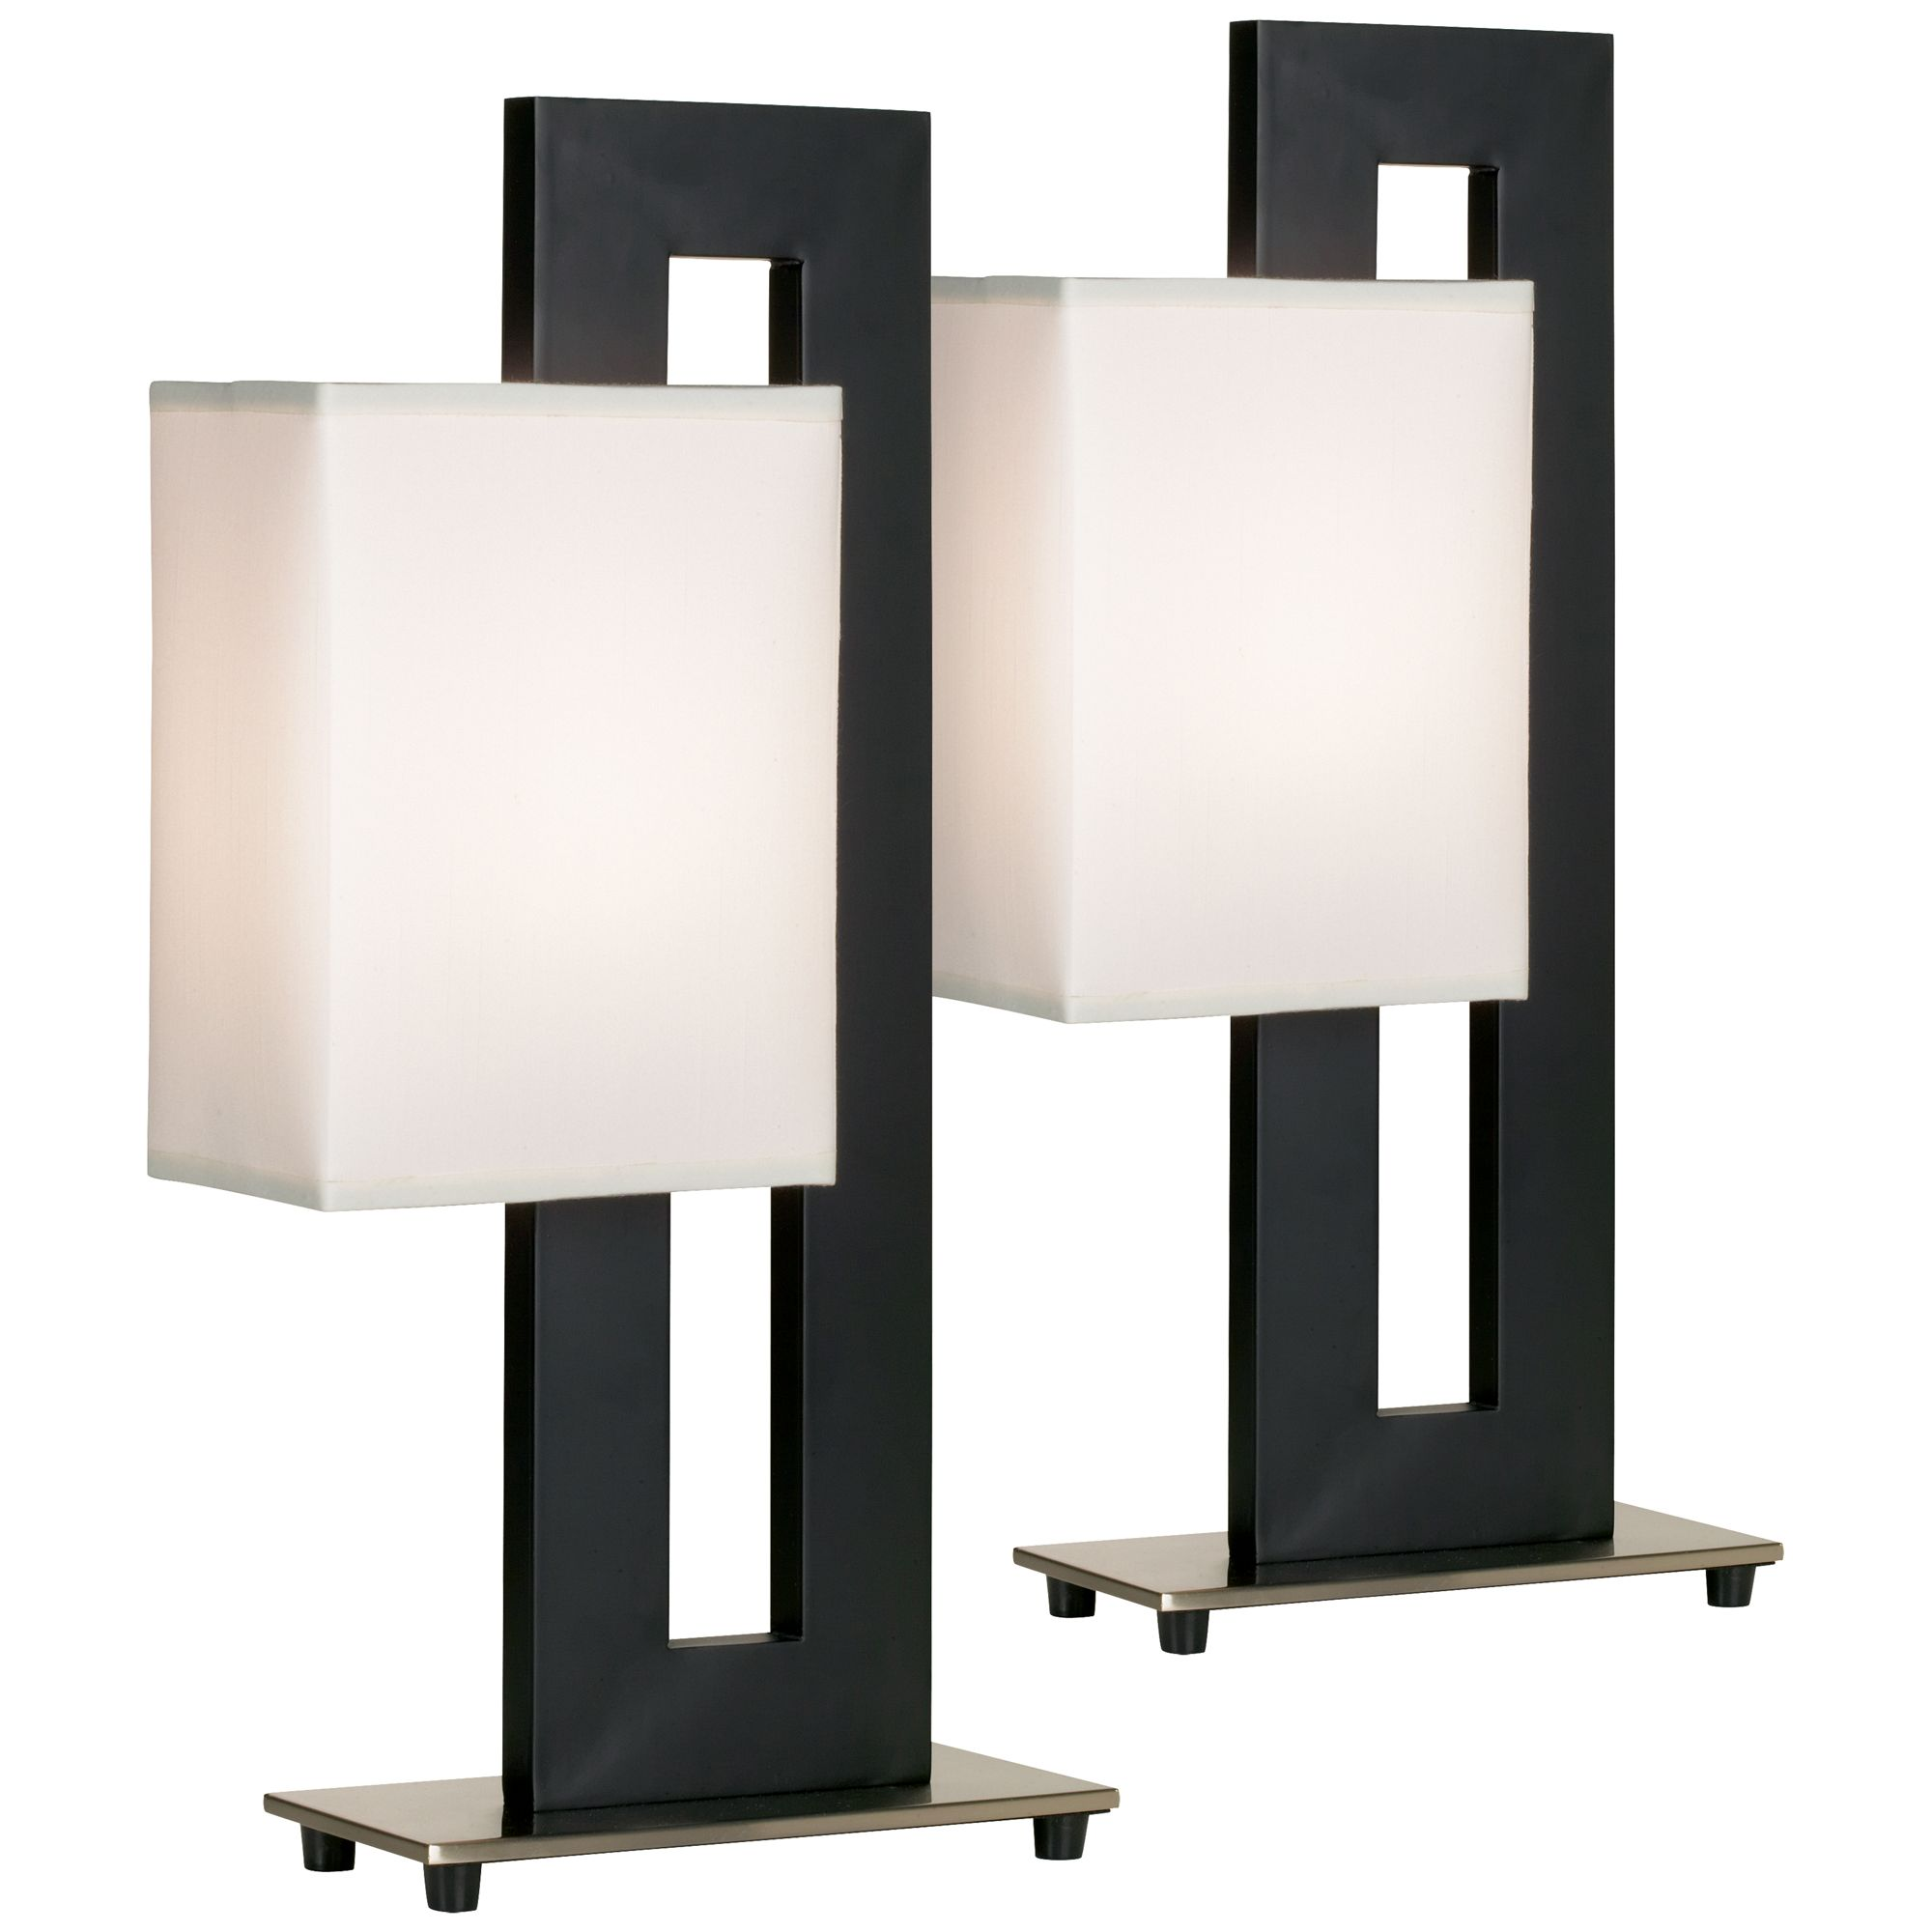 lighting modern accent table lamps set black floating contemporary square white rectangular shade for living room family bedroom grill chef gloss side entryway with shoe storage